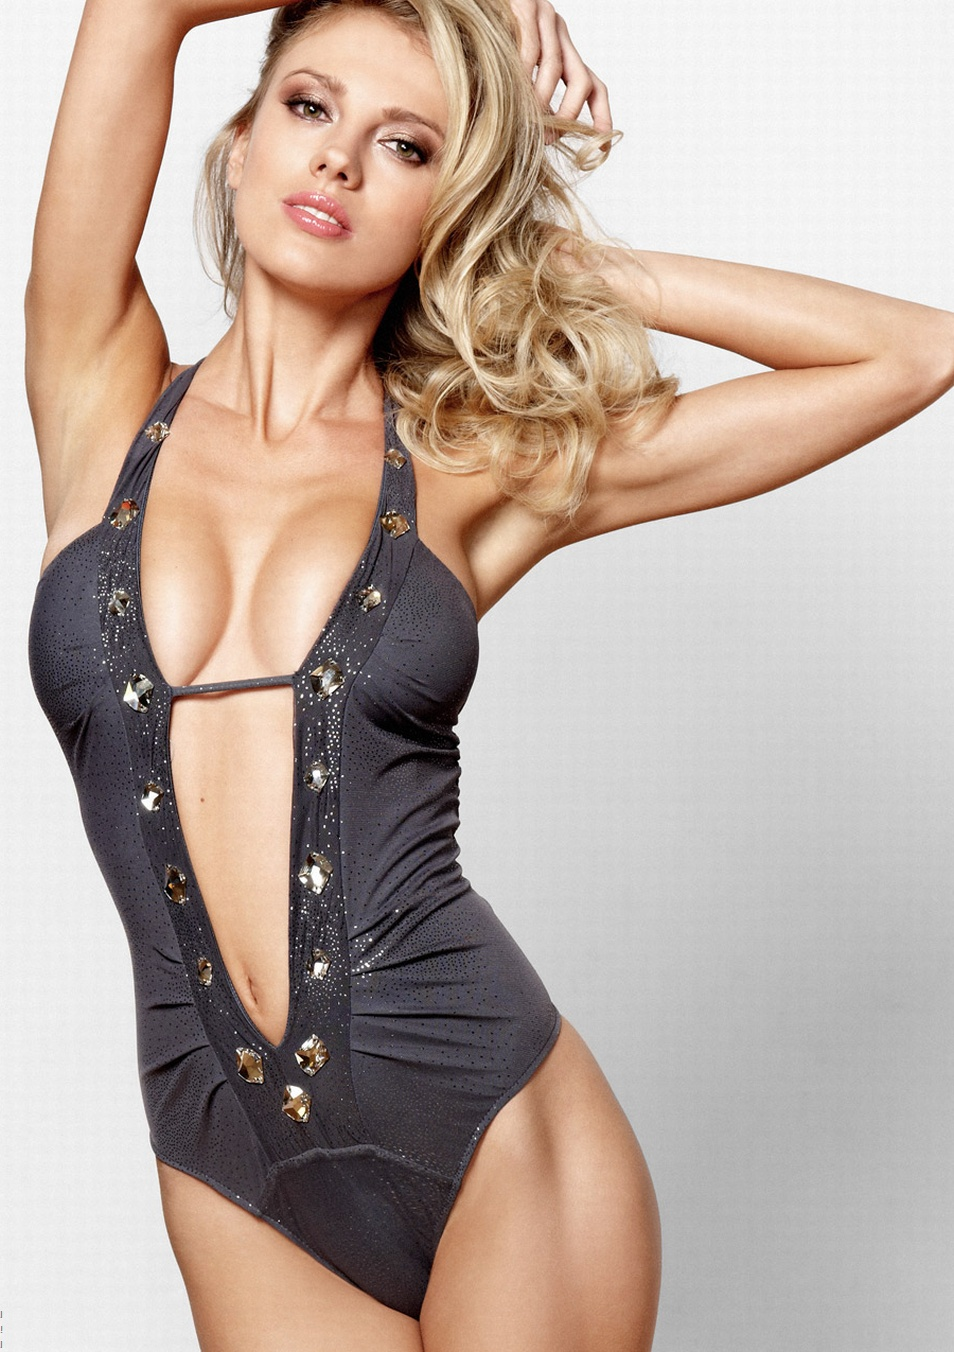 Bar-Paly-Beach-Bunny-swimwear-3